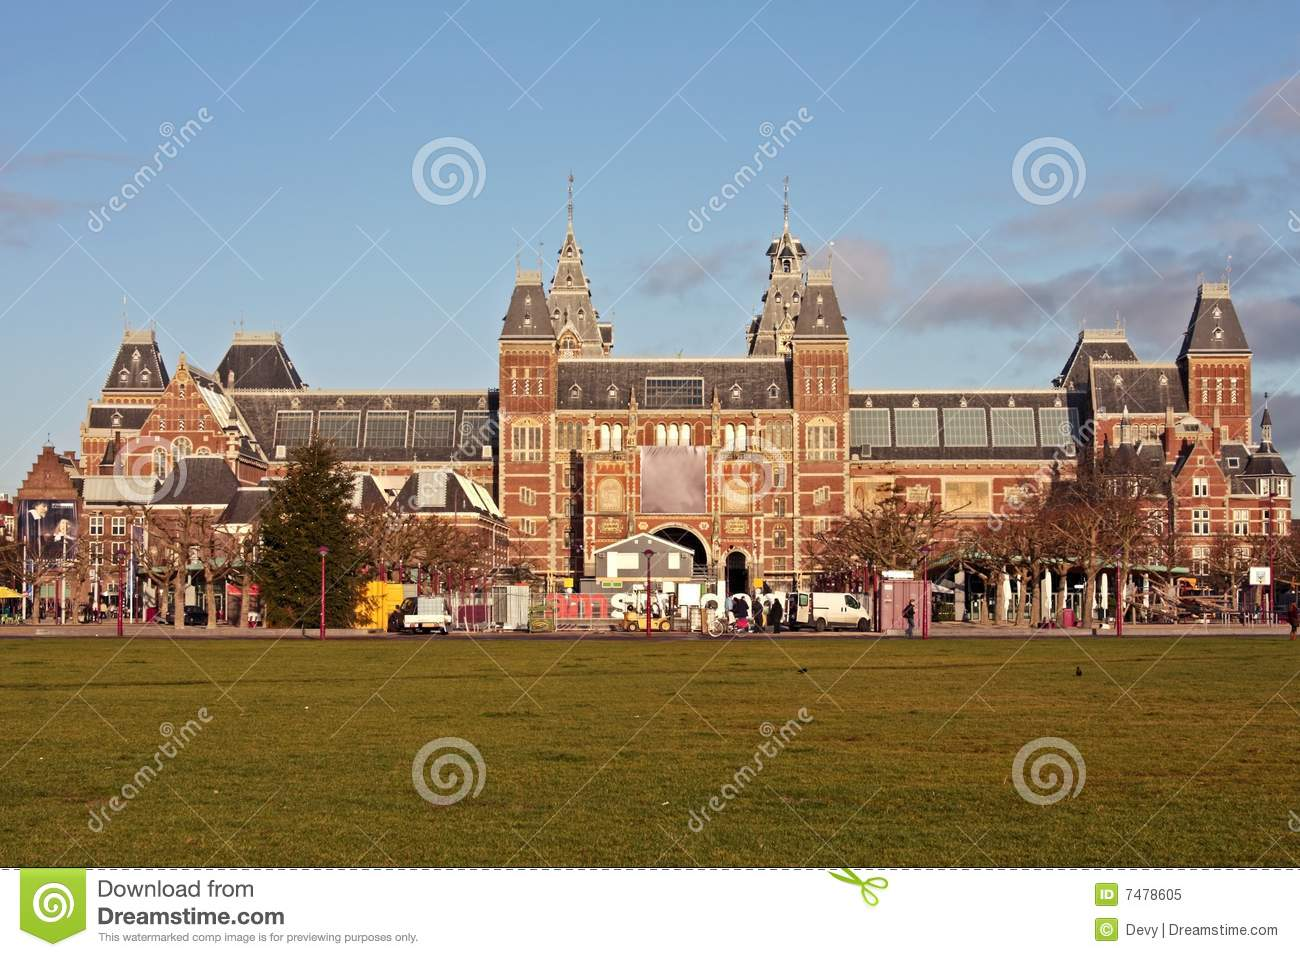 Rijksmuseum Grijs Rijksmuseum In The Netherlands Royalty Free Stock Photo